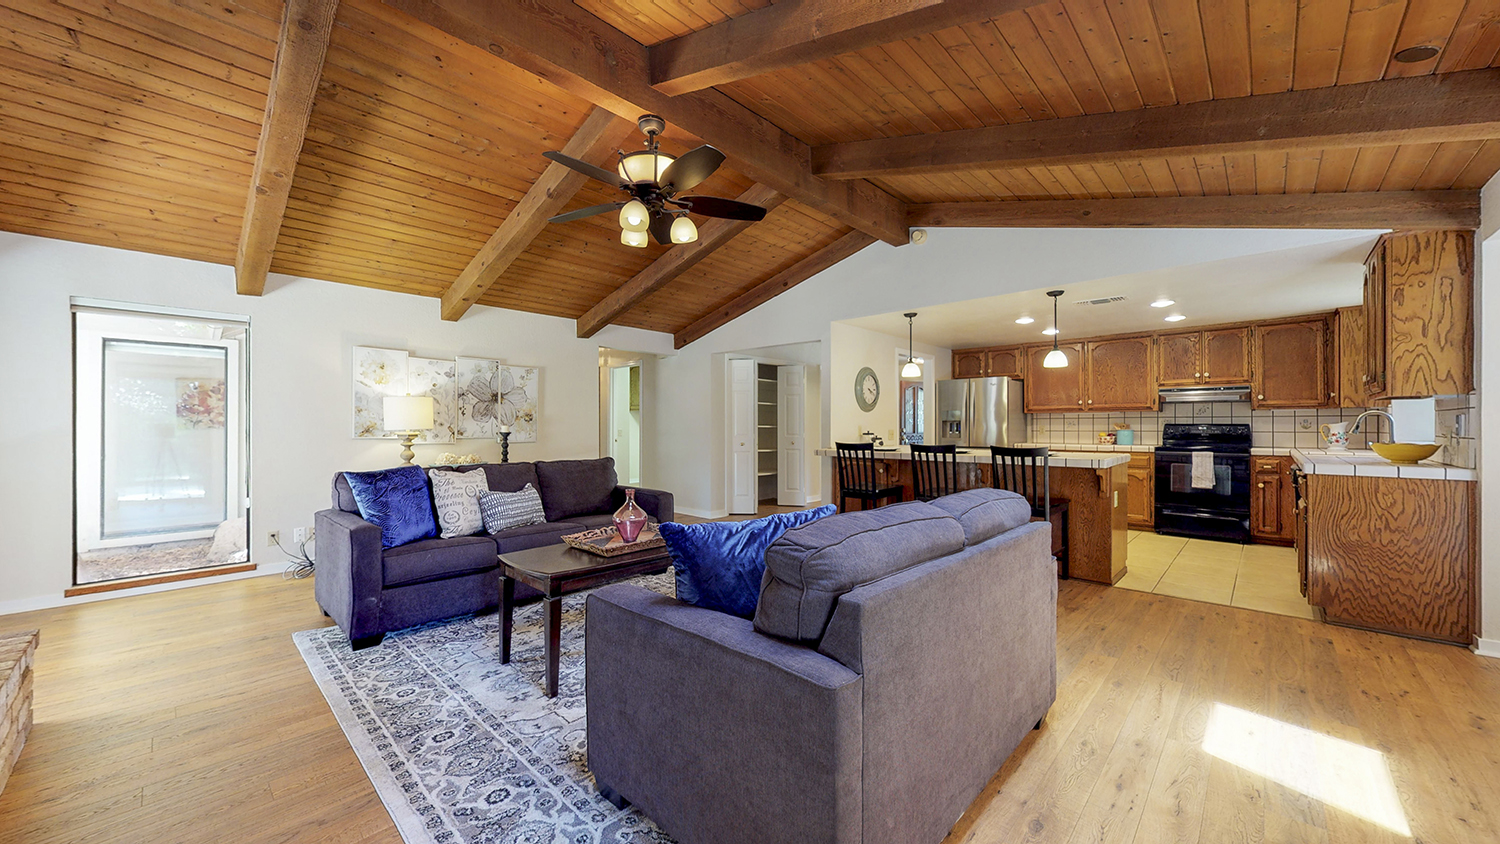 photography portfolio example - alternative angle of living room with wooden ceiling viewing into the kitchen